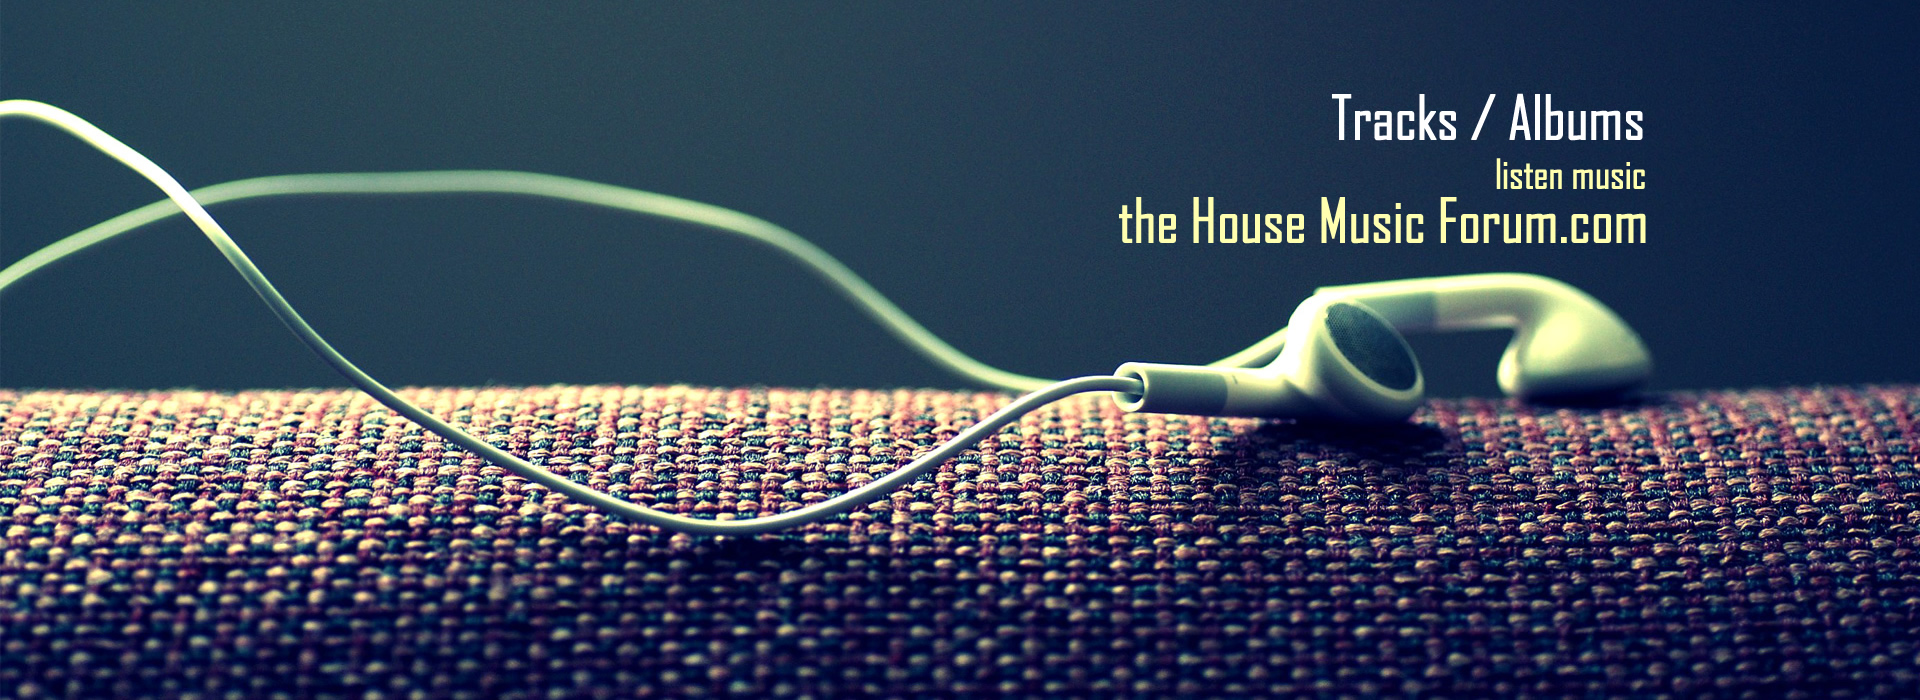 House music free download archives the house music forum for House music tracks